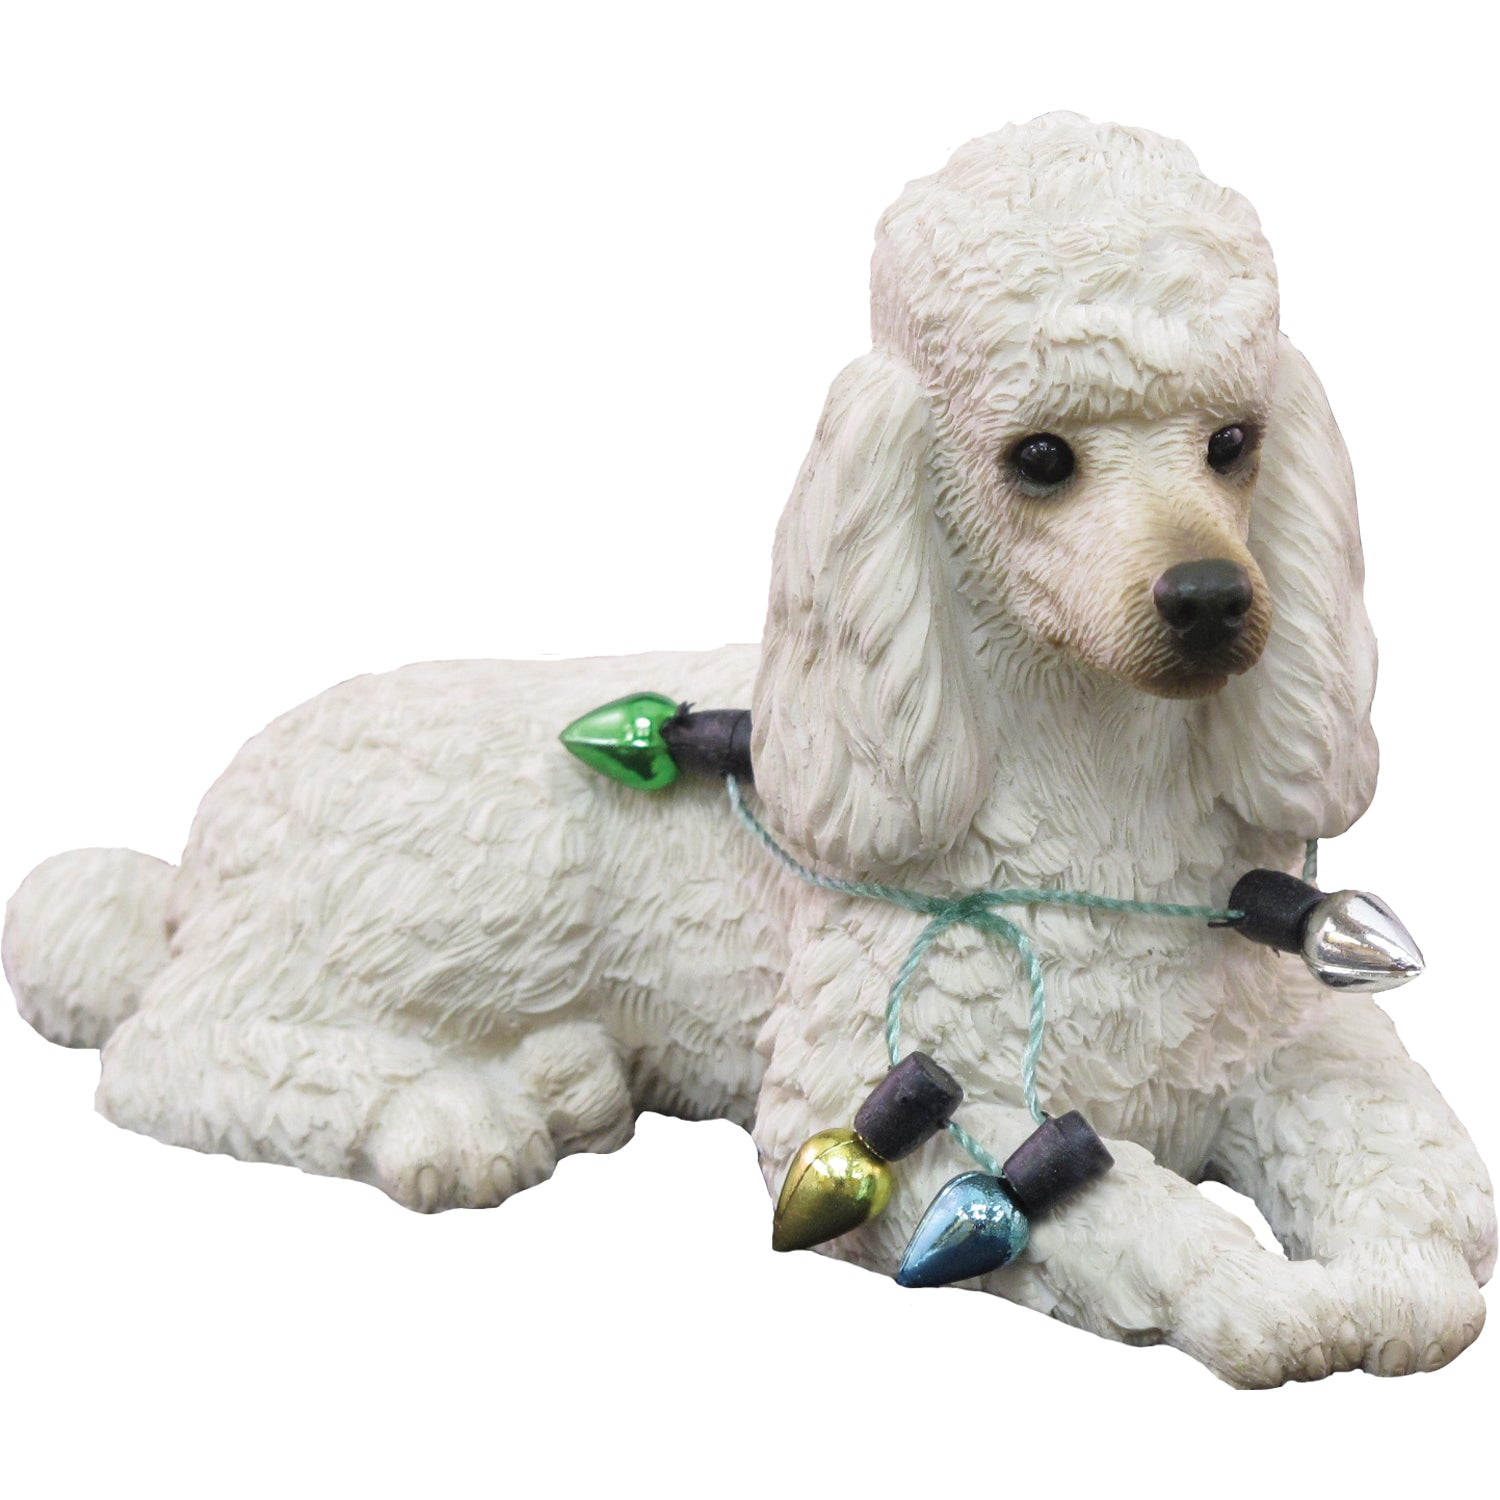 Sandicast Lying White Poodle w/ Lights Christmas Dog Ornament